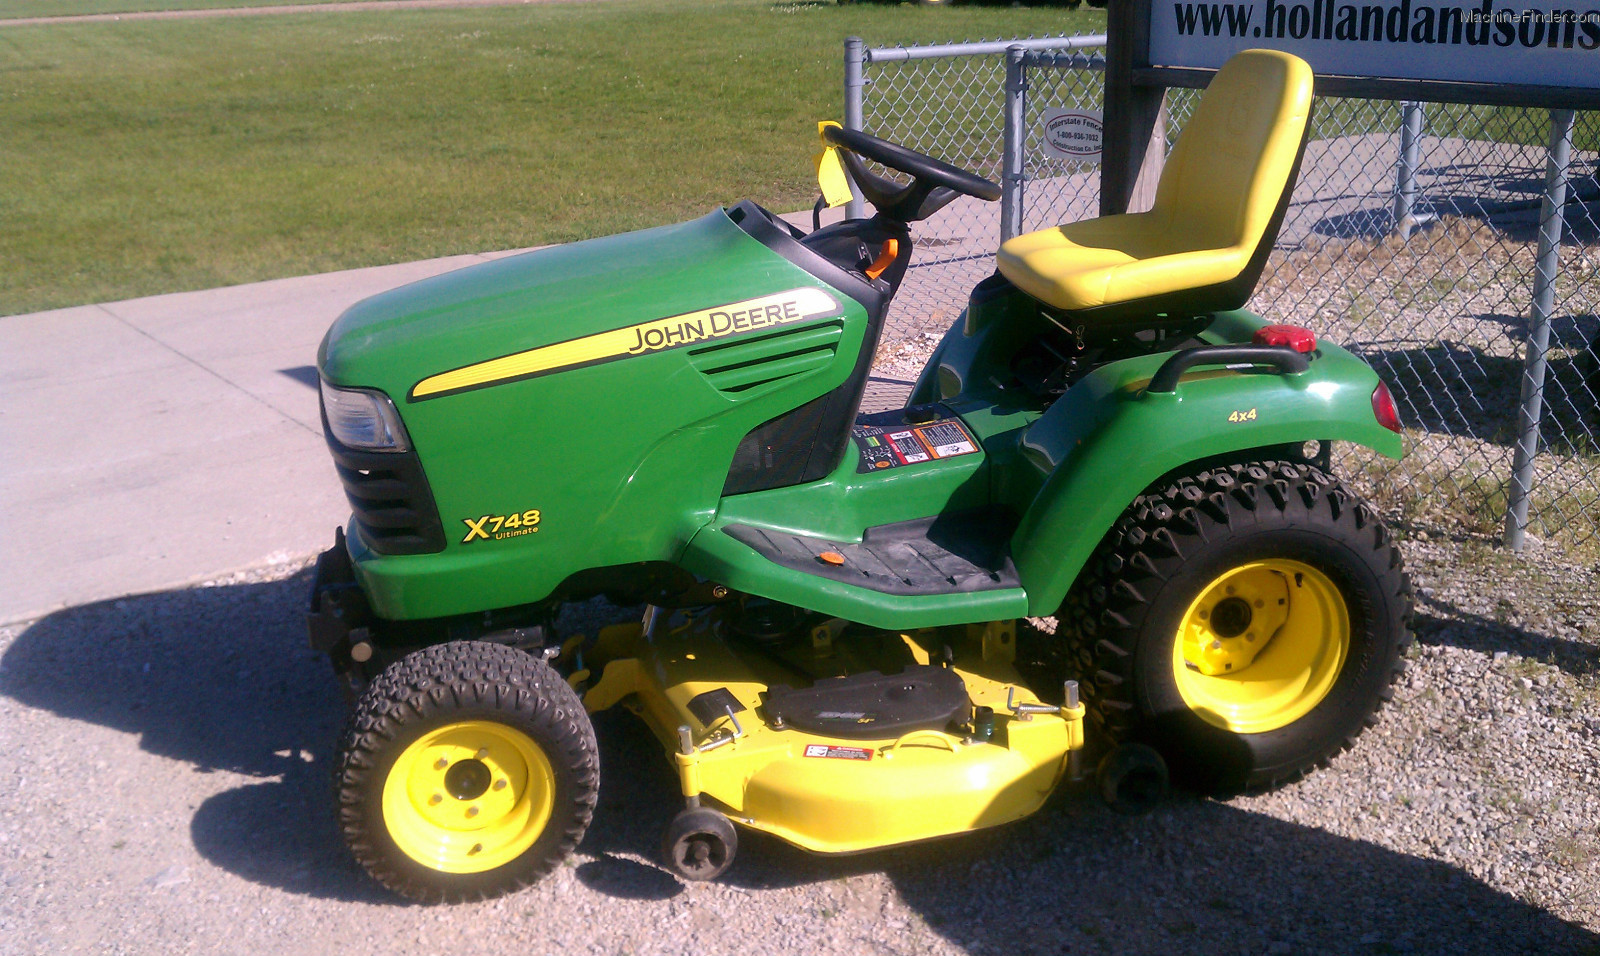 John Deere 944 http://www.machinefinder.com/ww/en-US/machine/2286284